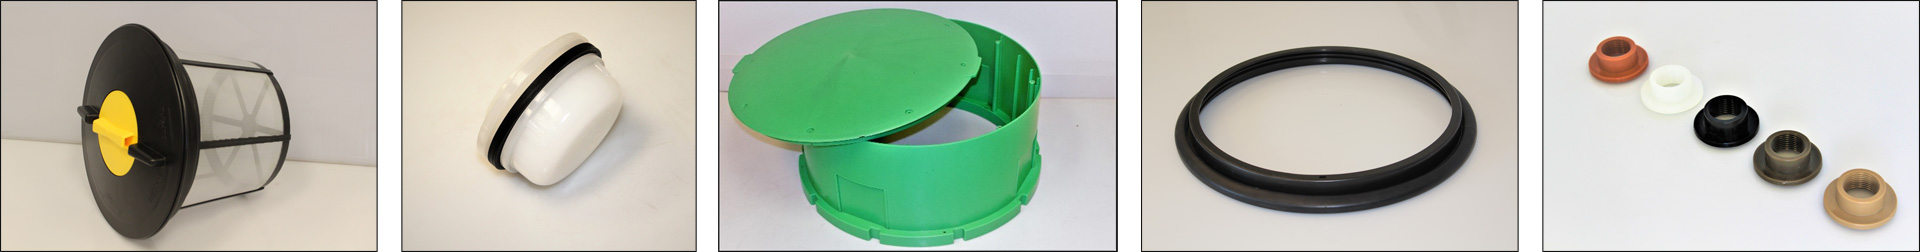 AIK Tank Accessory Products